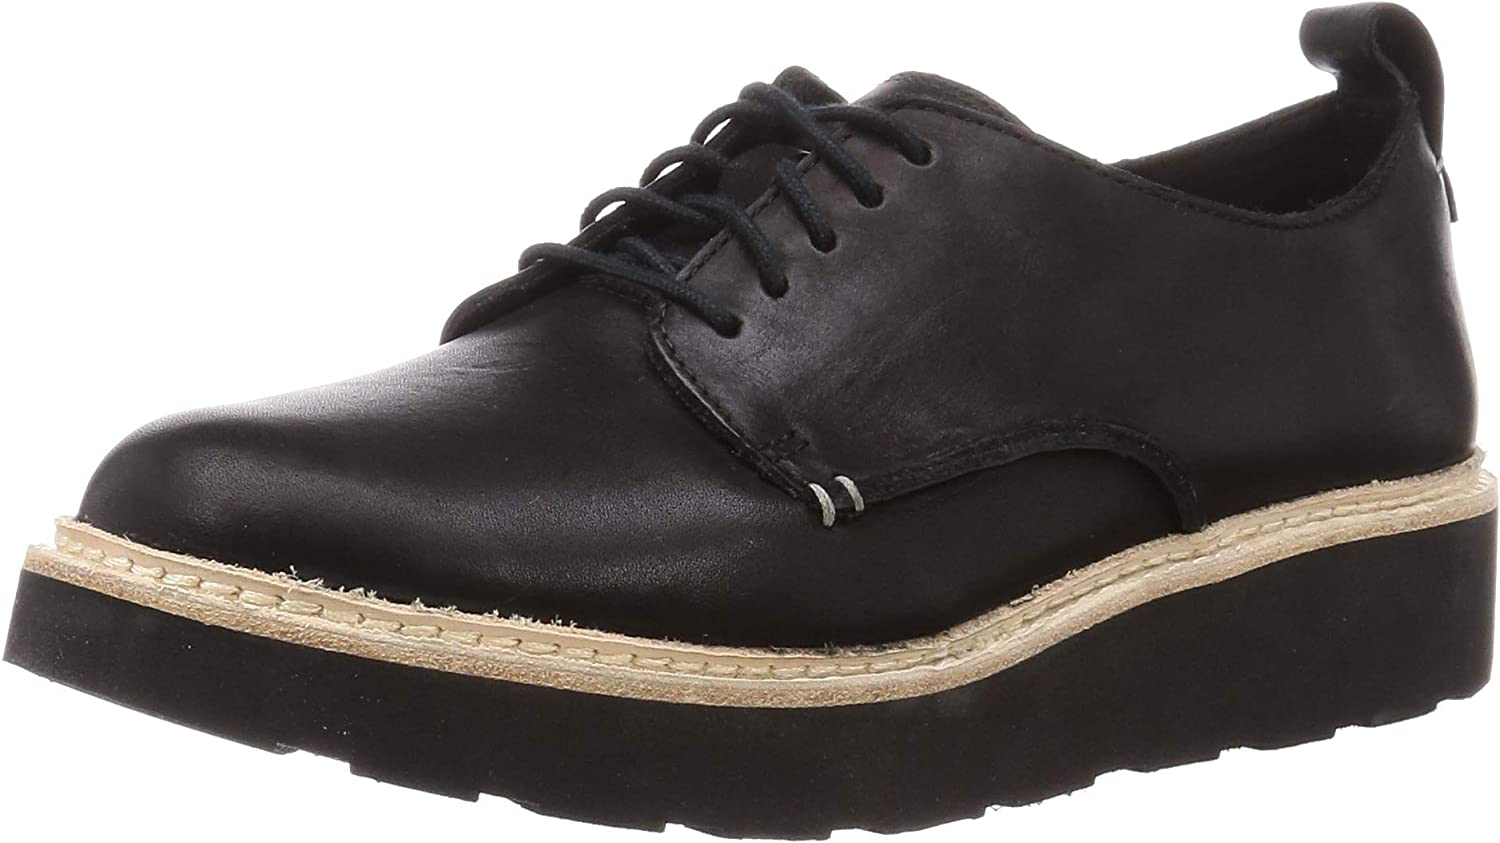 Clarks Trace Walk Leather Shoes in